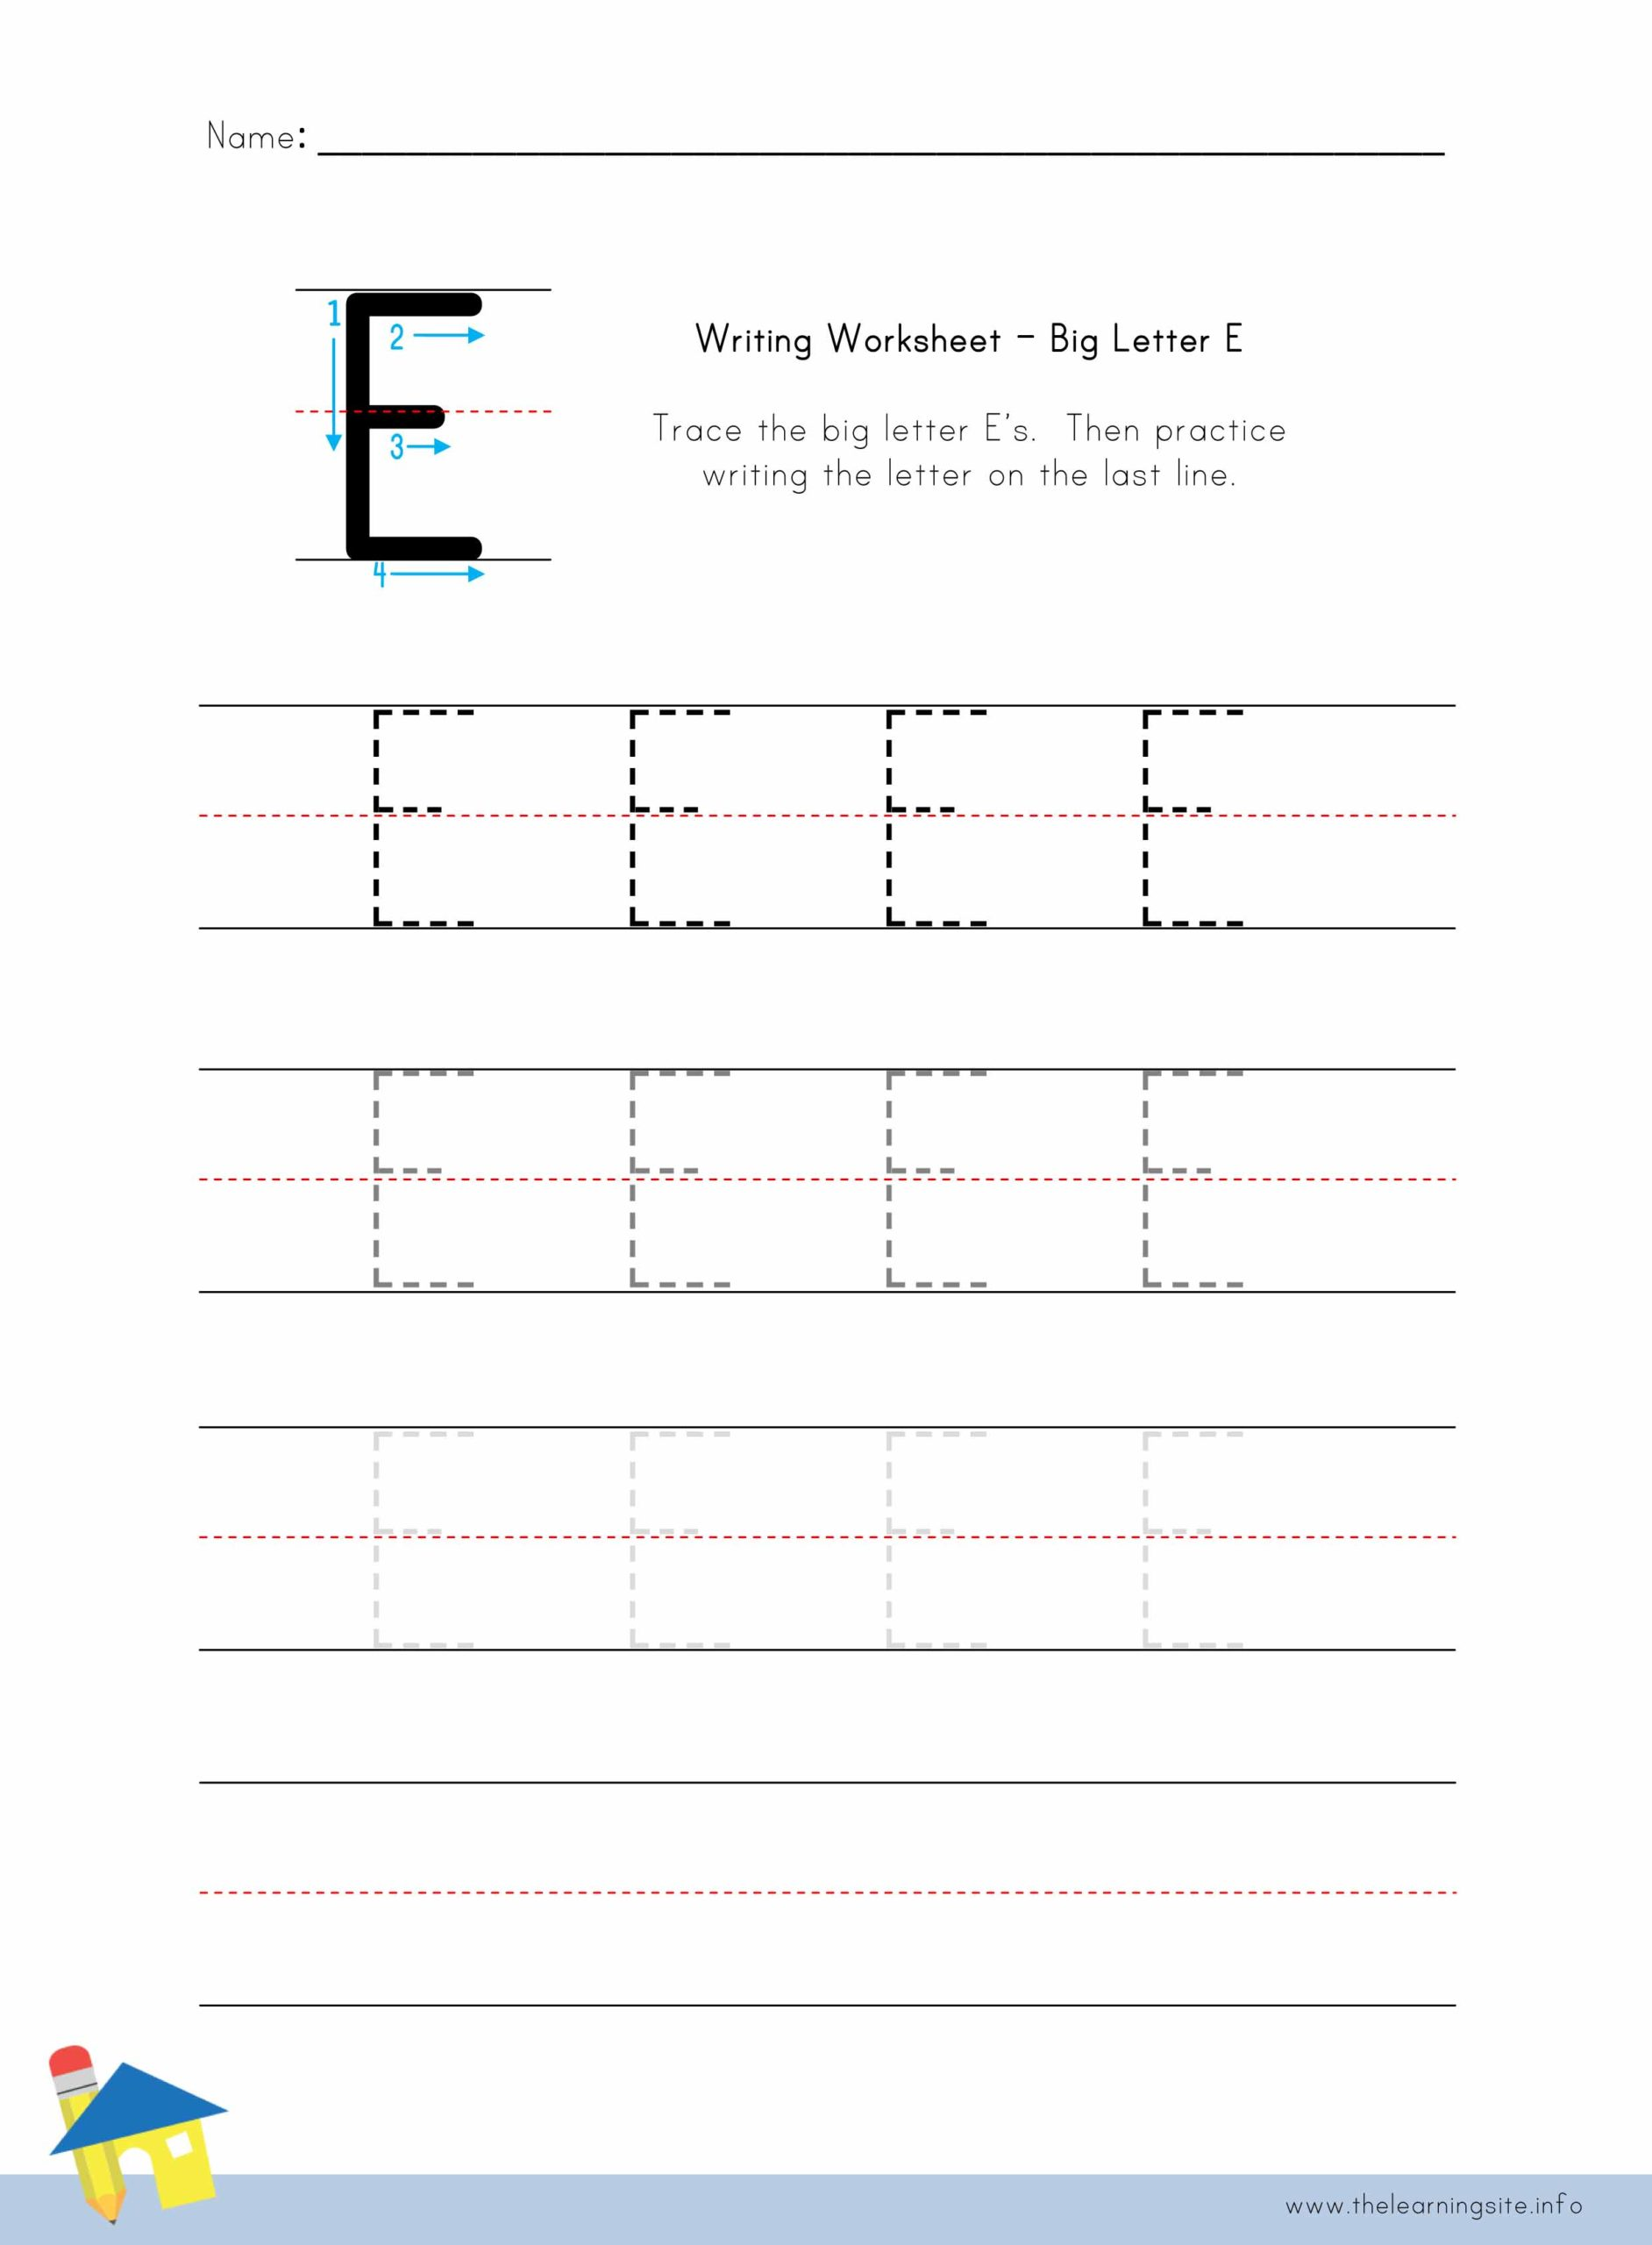 Big Letter E Writing Worksheet The Learning Site